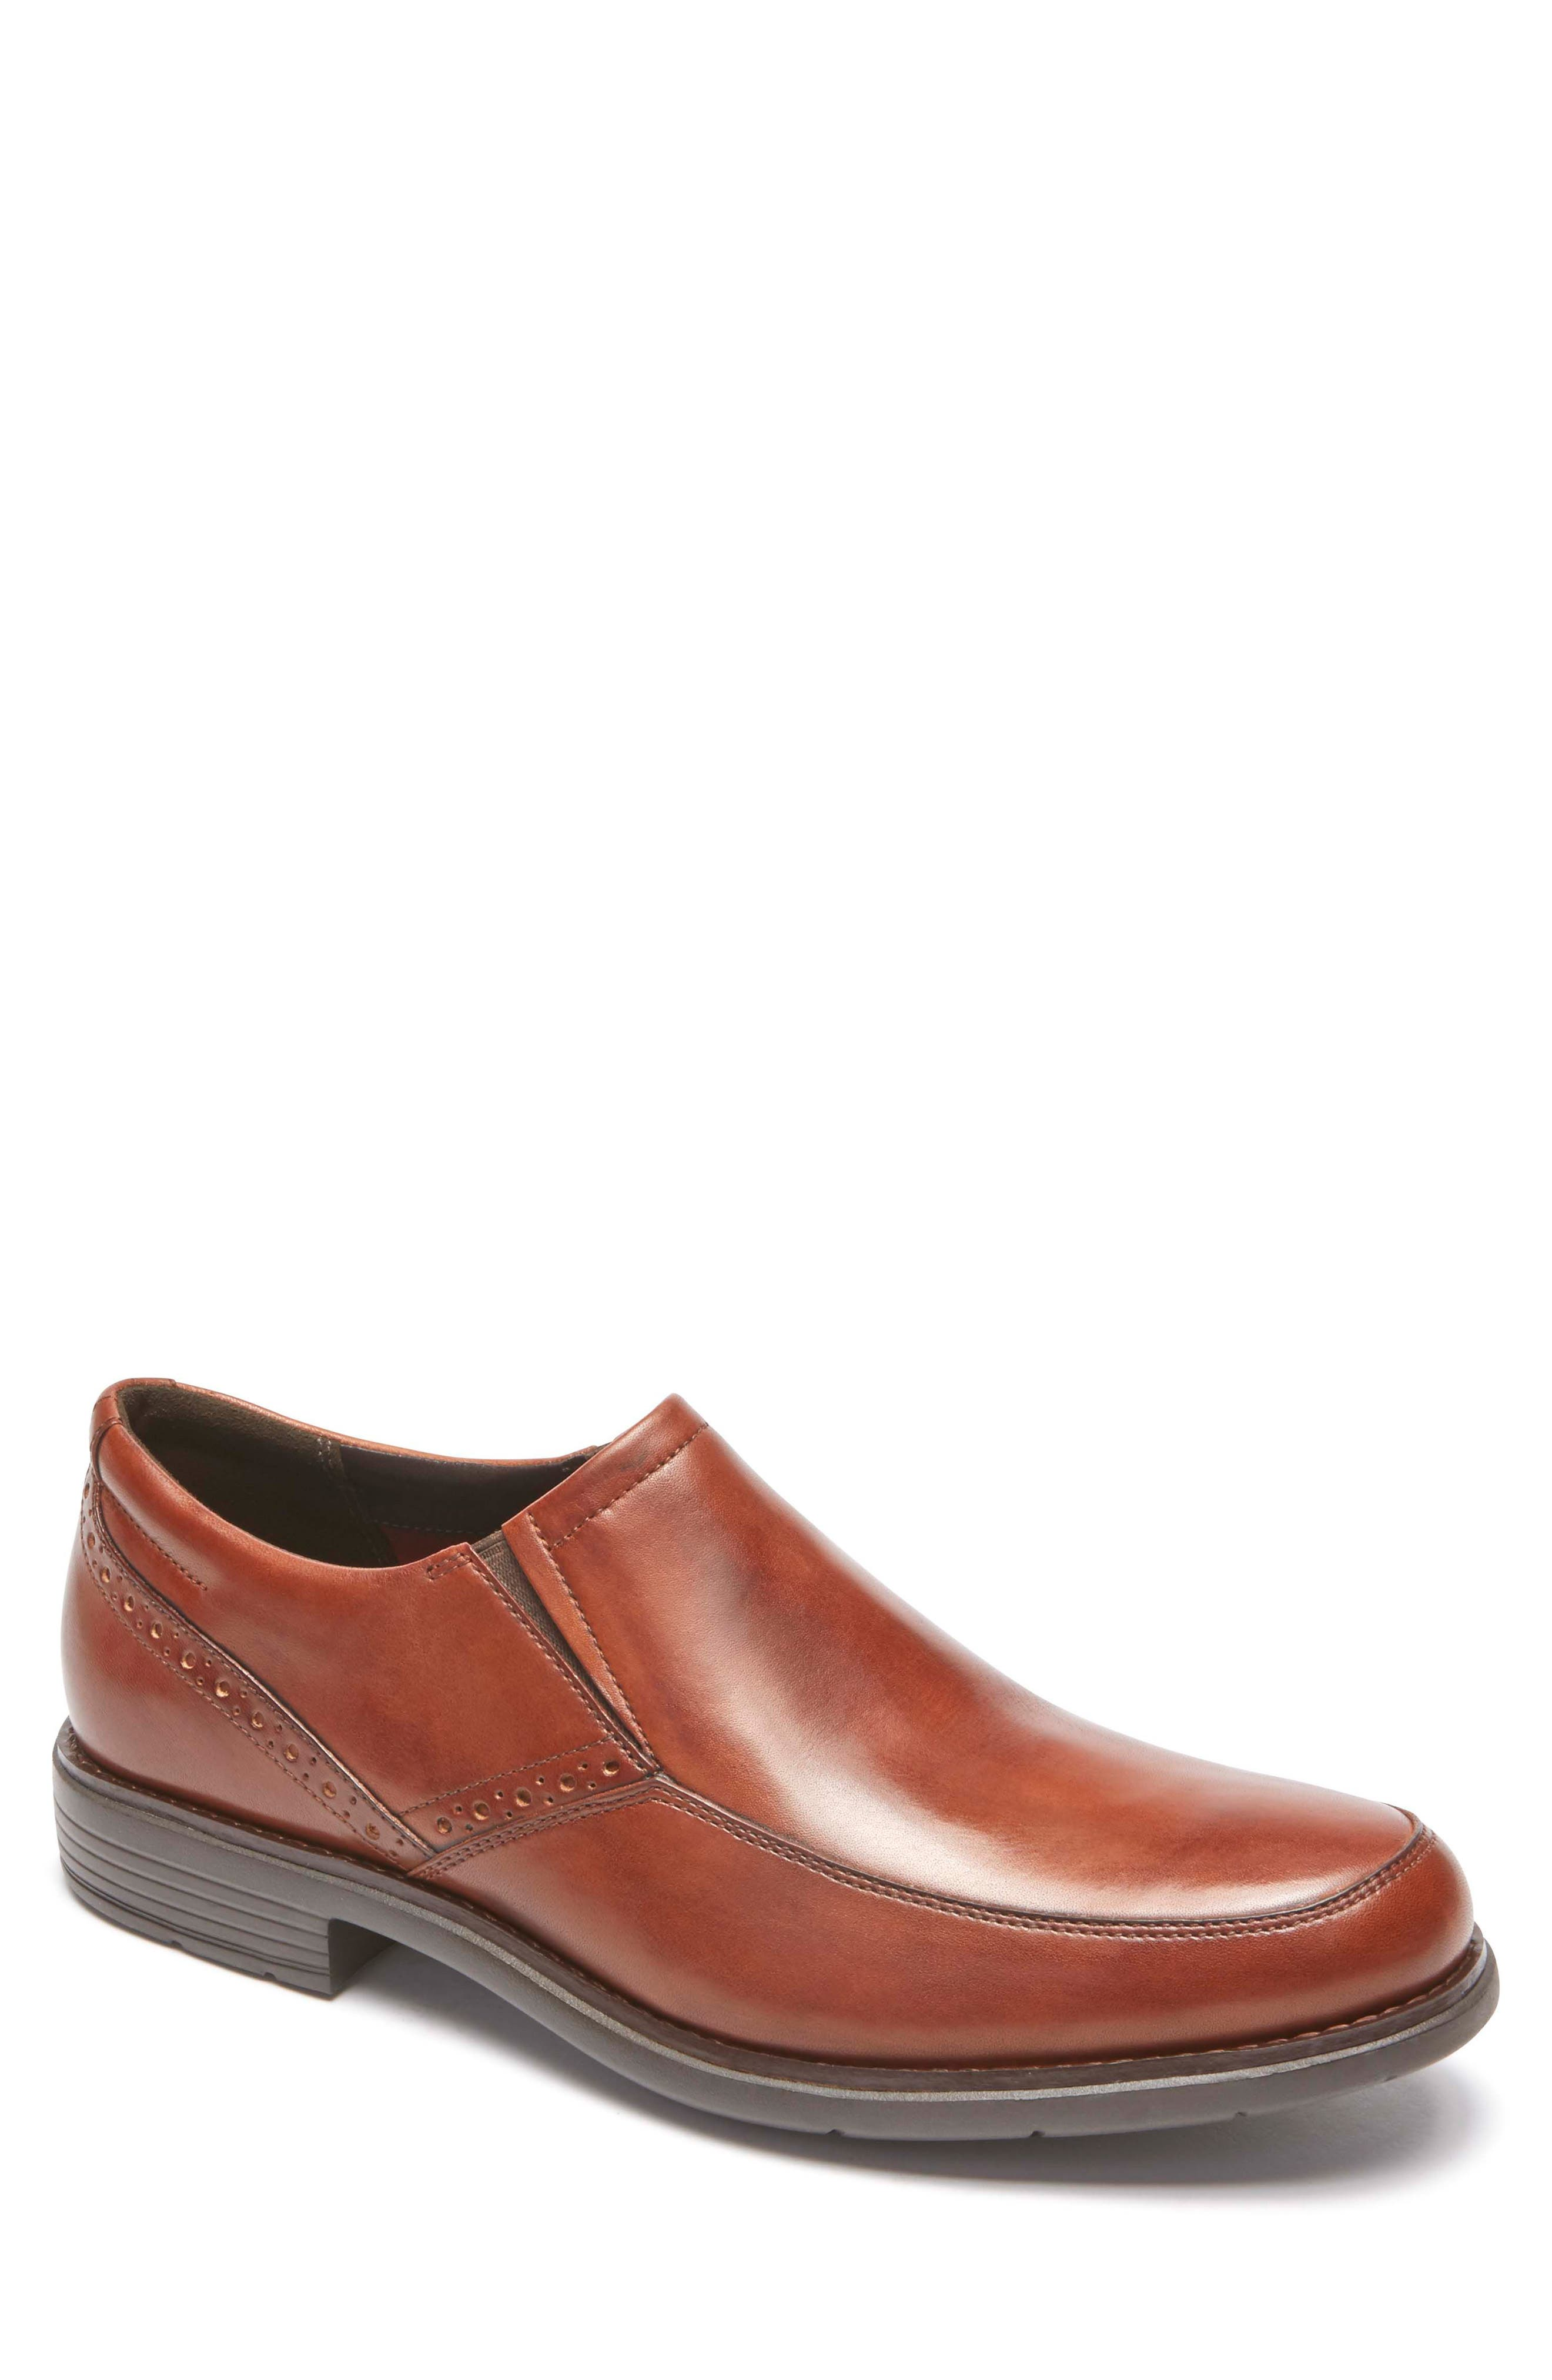 Total Motion Classic Dress Venetian Loafer,                         Main,                         color, TAN LEATHER